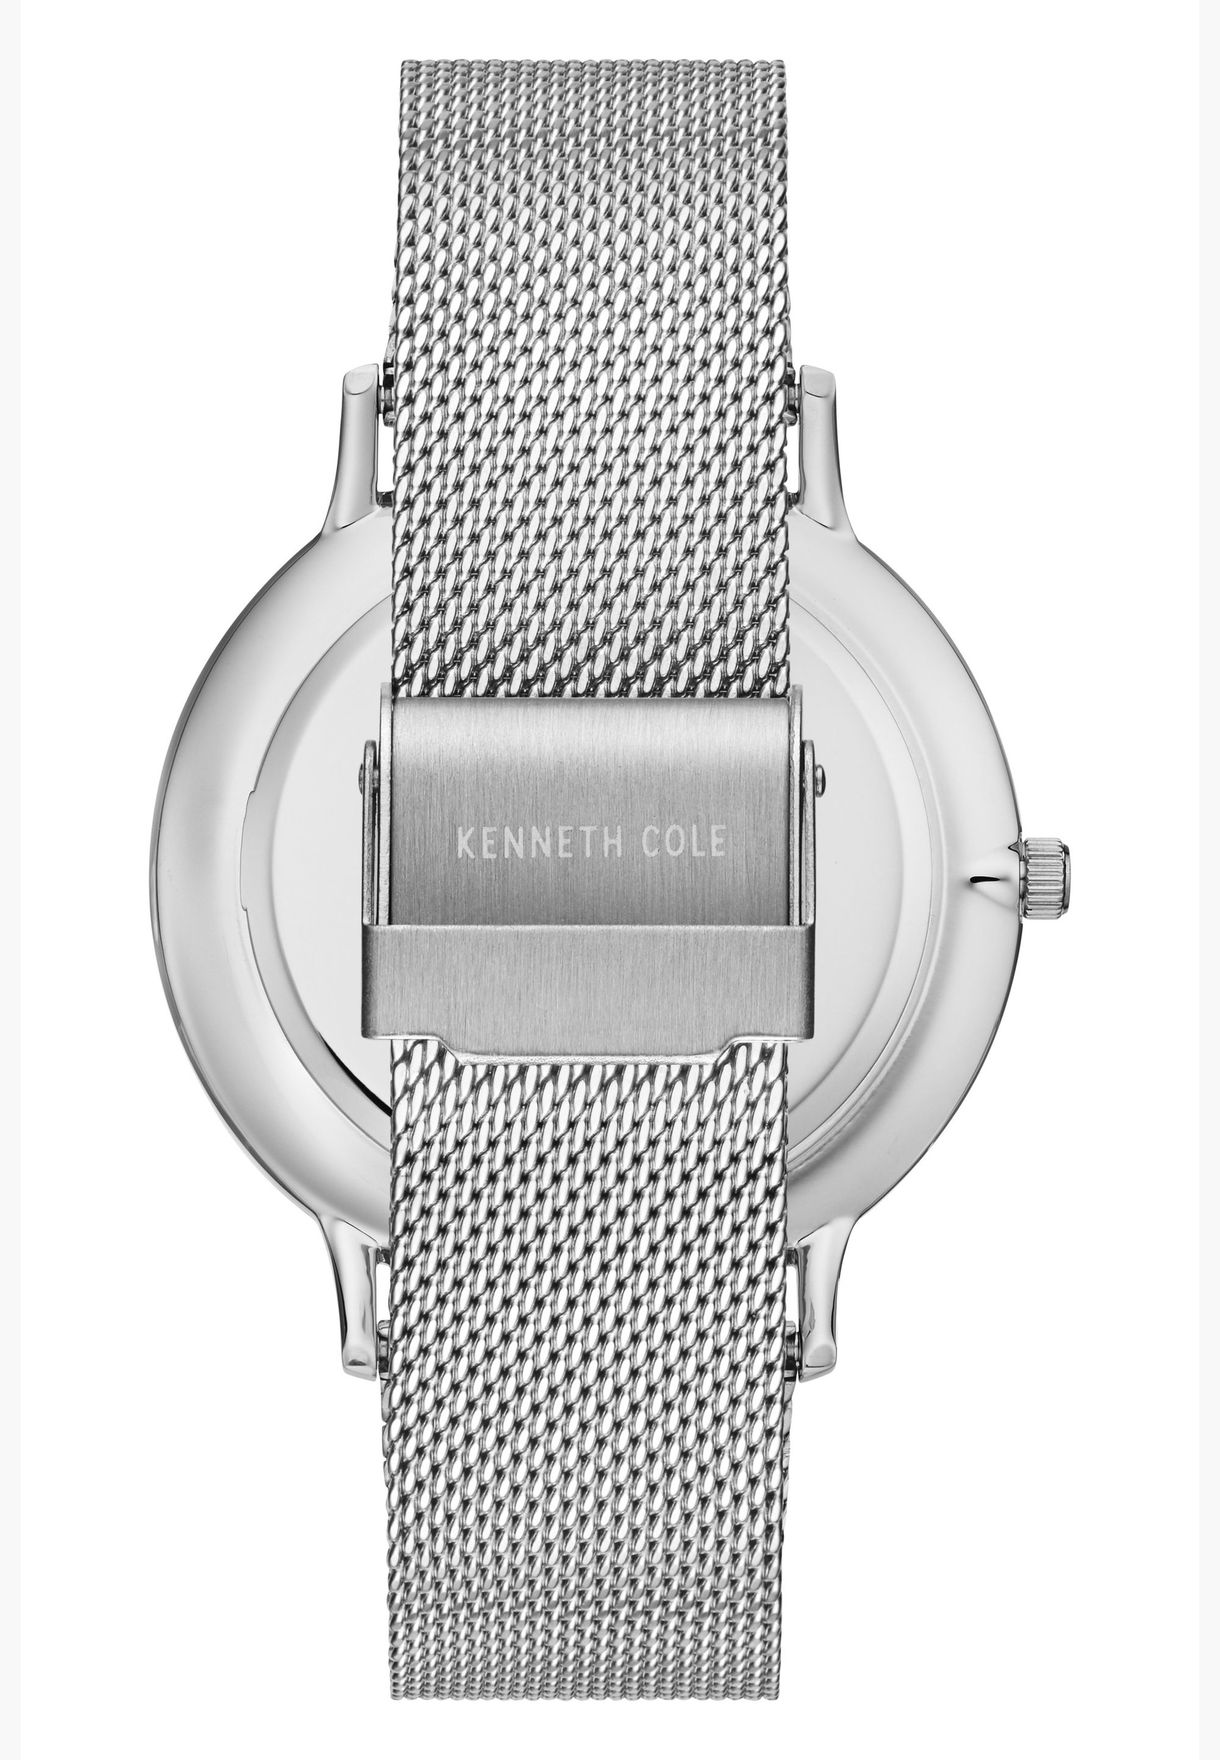 Kenneth Cole Classic Steel Strap Watch for Men - KC50785004